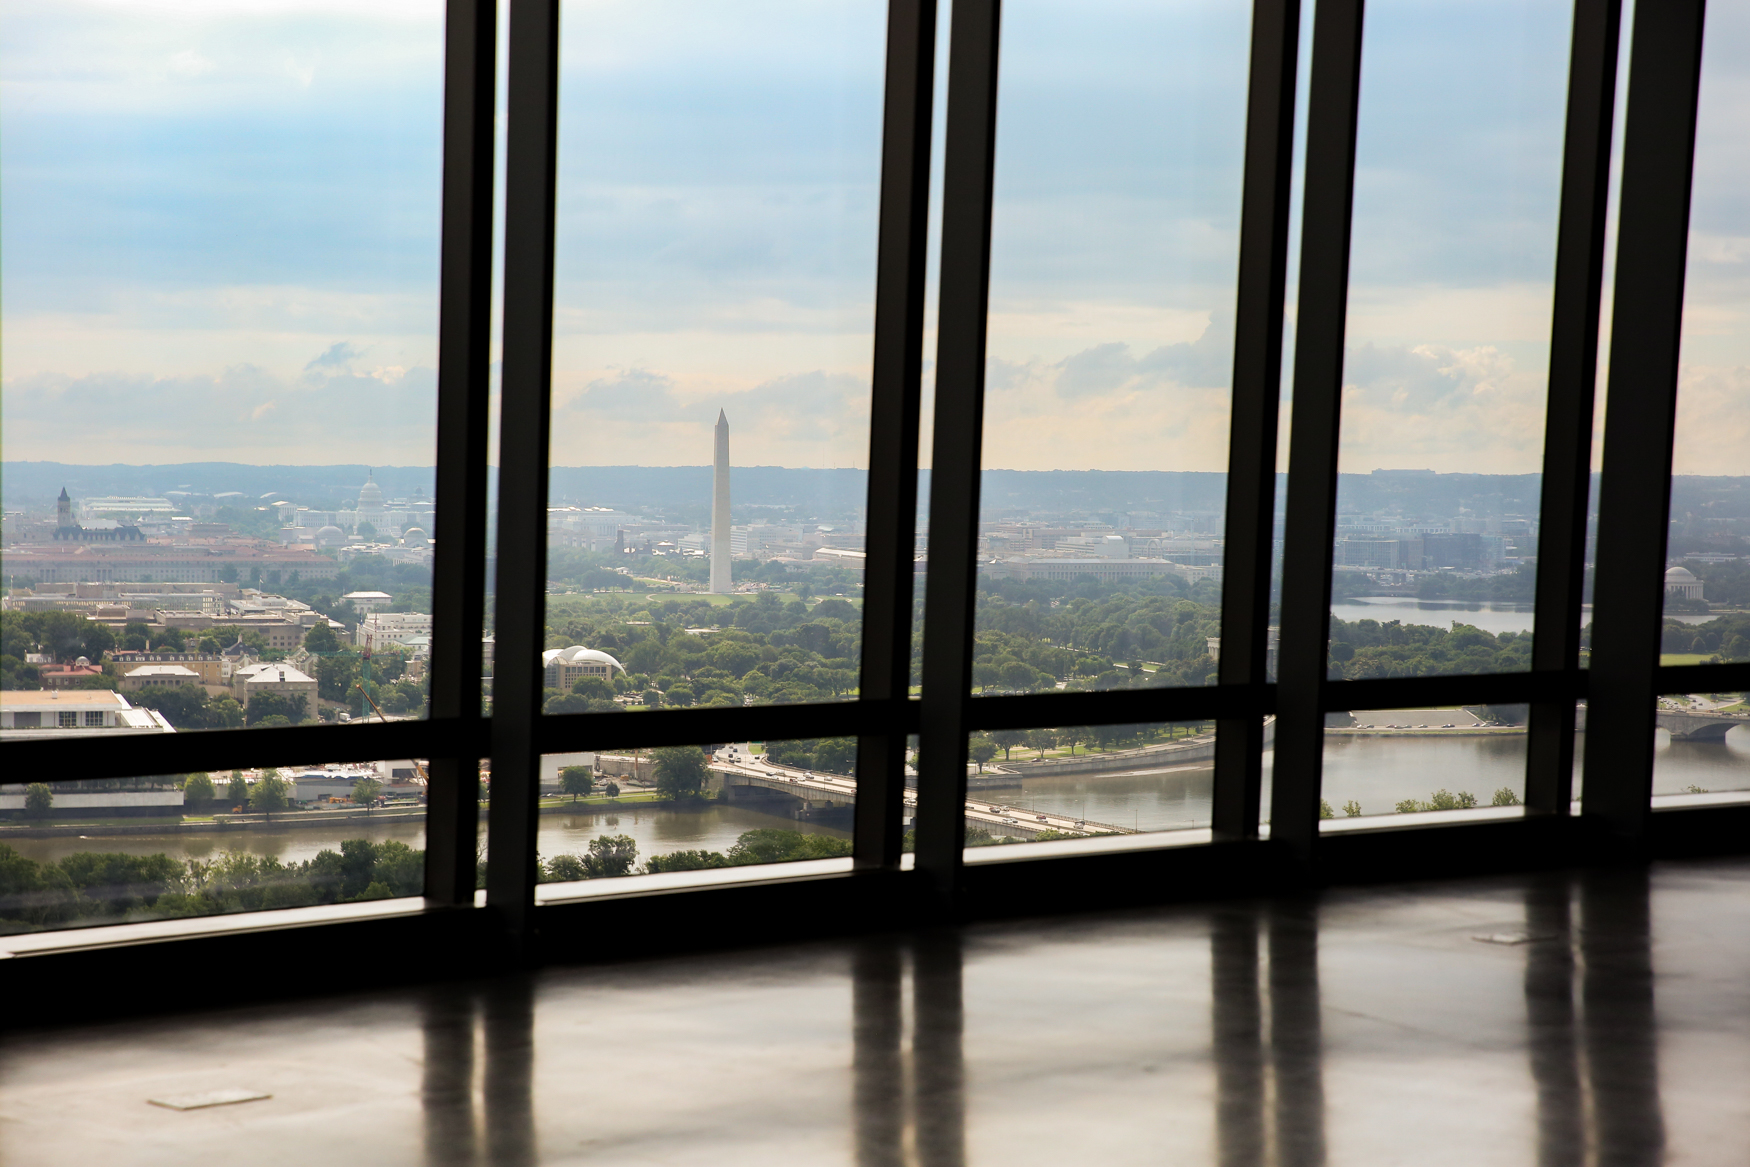 D.C. prizes its rooftop bars and pools, but nothing in The District can compare to the The Observation Deck at CEB Tower, which opens to the public today. The Observation Deck offers a panoramic look at D.C. and Northern Virginia, meaning visitors can catch a bird's eye-view of The Pentagon, the Potomac River and the National Mall. The Observation Deck is more than just a visual experience - it has a state-of-the art mini-museum that offers a glimpse into the history of what you're seeing outside the floor-to-ceiling windows using digital displays and holograms. Although those who are afraid of heights may be able to stomach the views from the enclosed 31st floor, the brave can head to the deck on the 32nd floor. Although the deck is surrounded by huge panes of glass, try not to look down and remember that you're standing 387 feet above the Rosslyn sidewalk below. The Observation Deck at CEB Tower is located at 1201 Wilson Blvd., Arlington, VA and adult tickets online go for $21. (Amanda Andrade-Rhoades/DC Refined)<br>